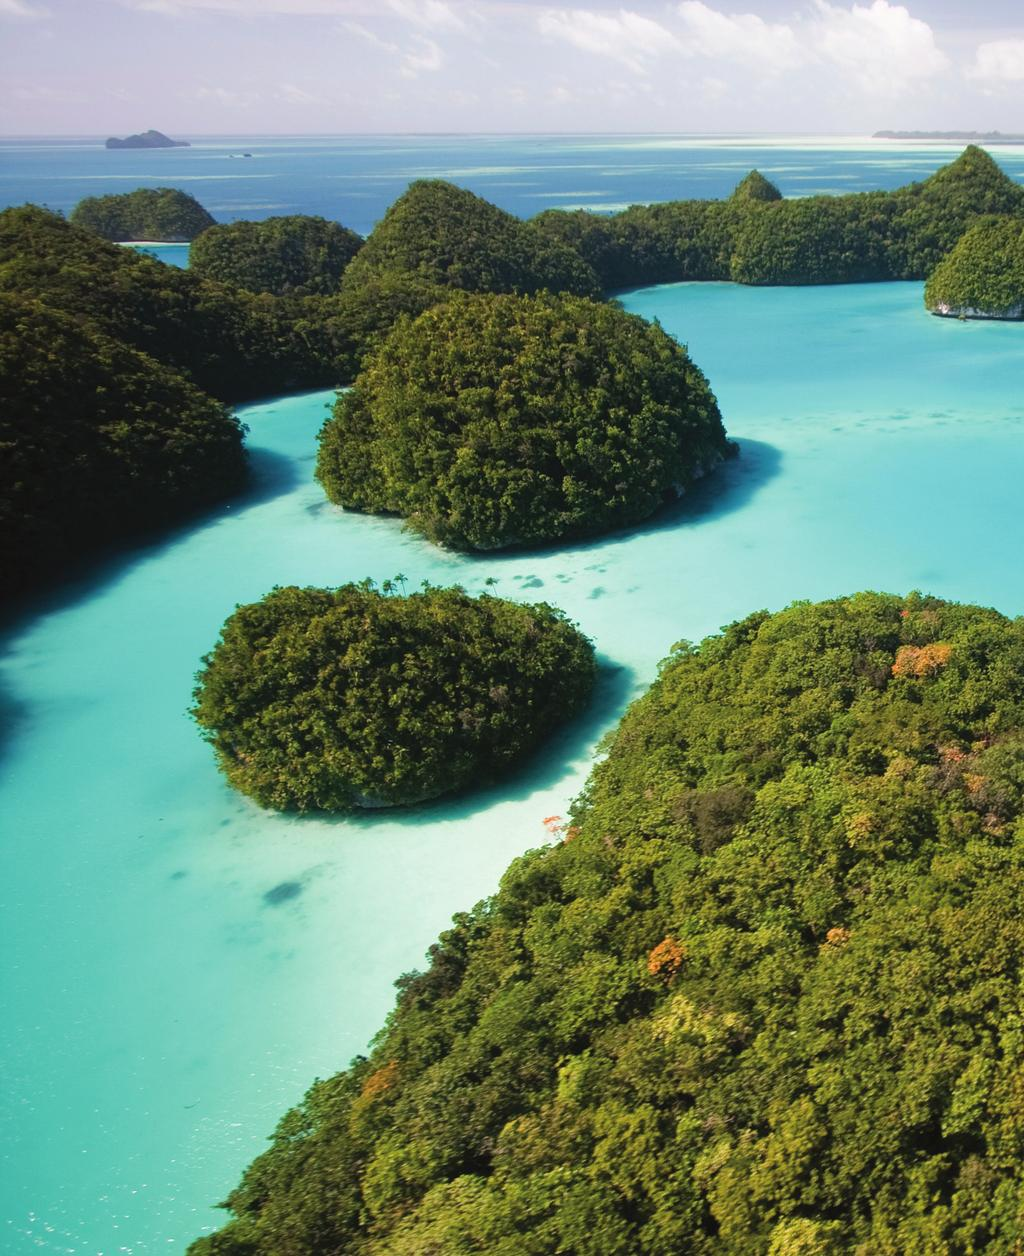 Palau, an archipelago made up of more than 250 islands in the western